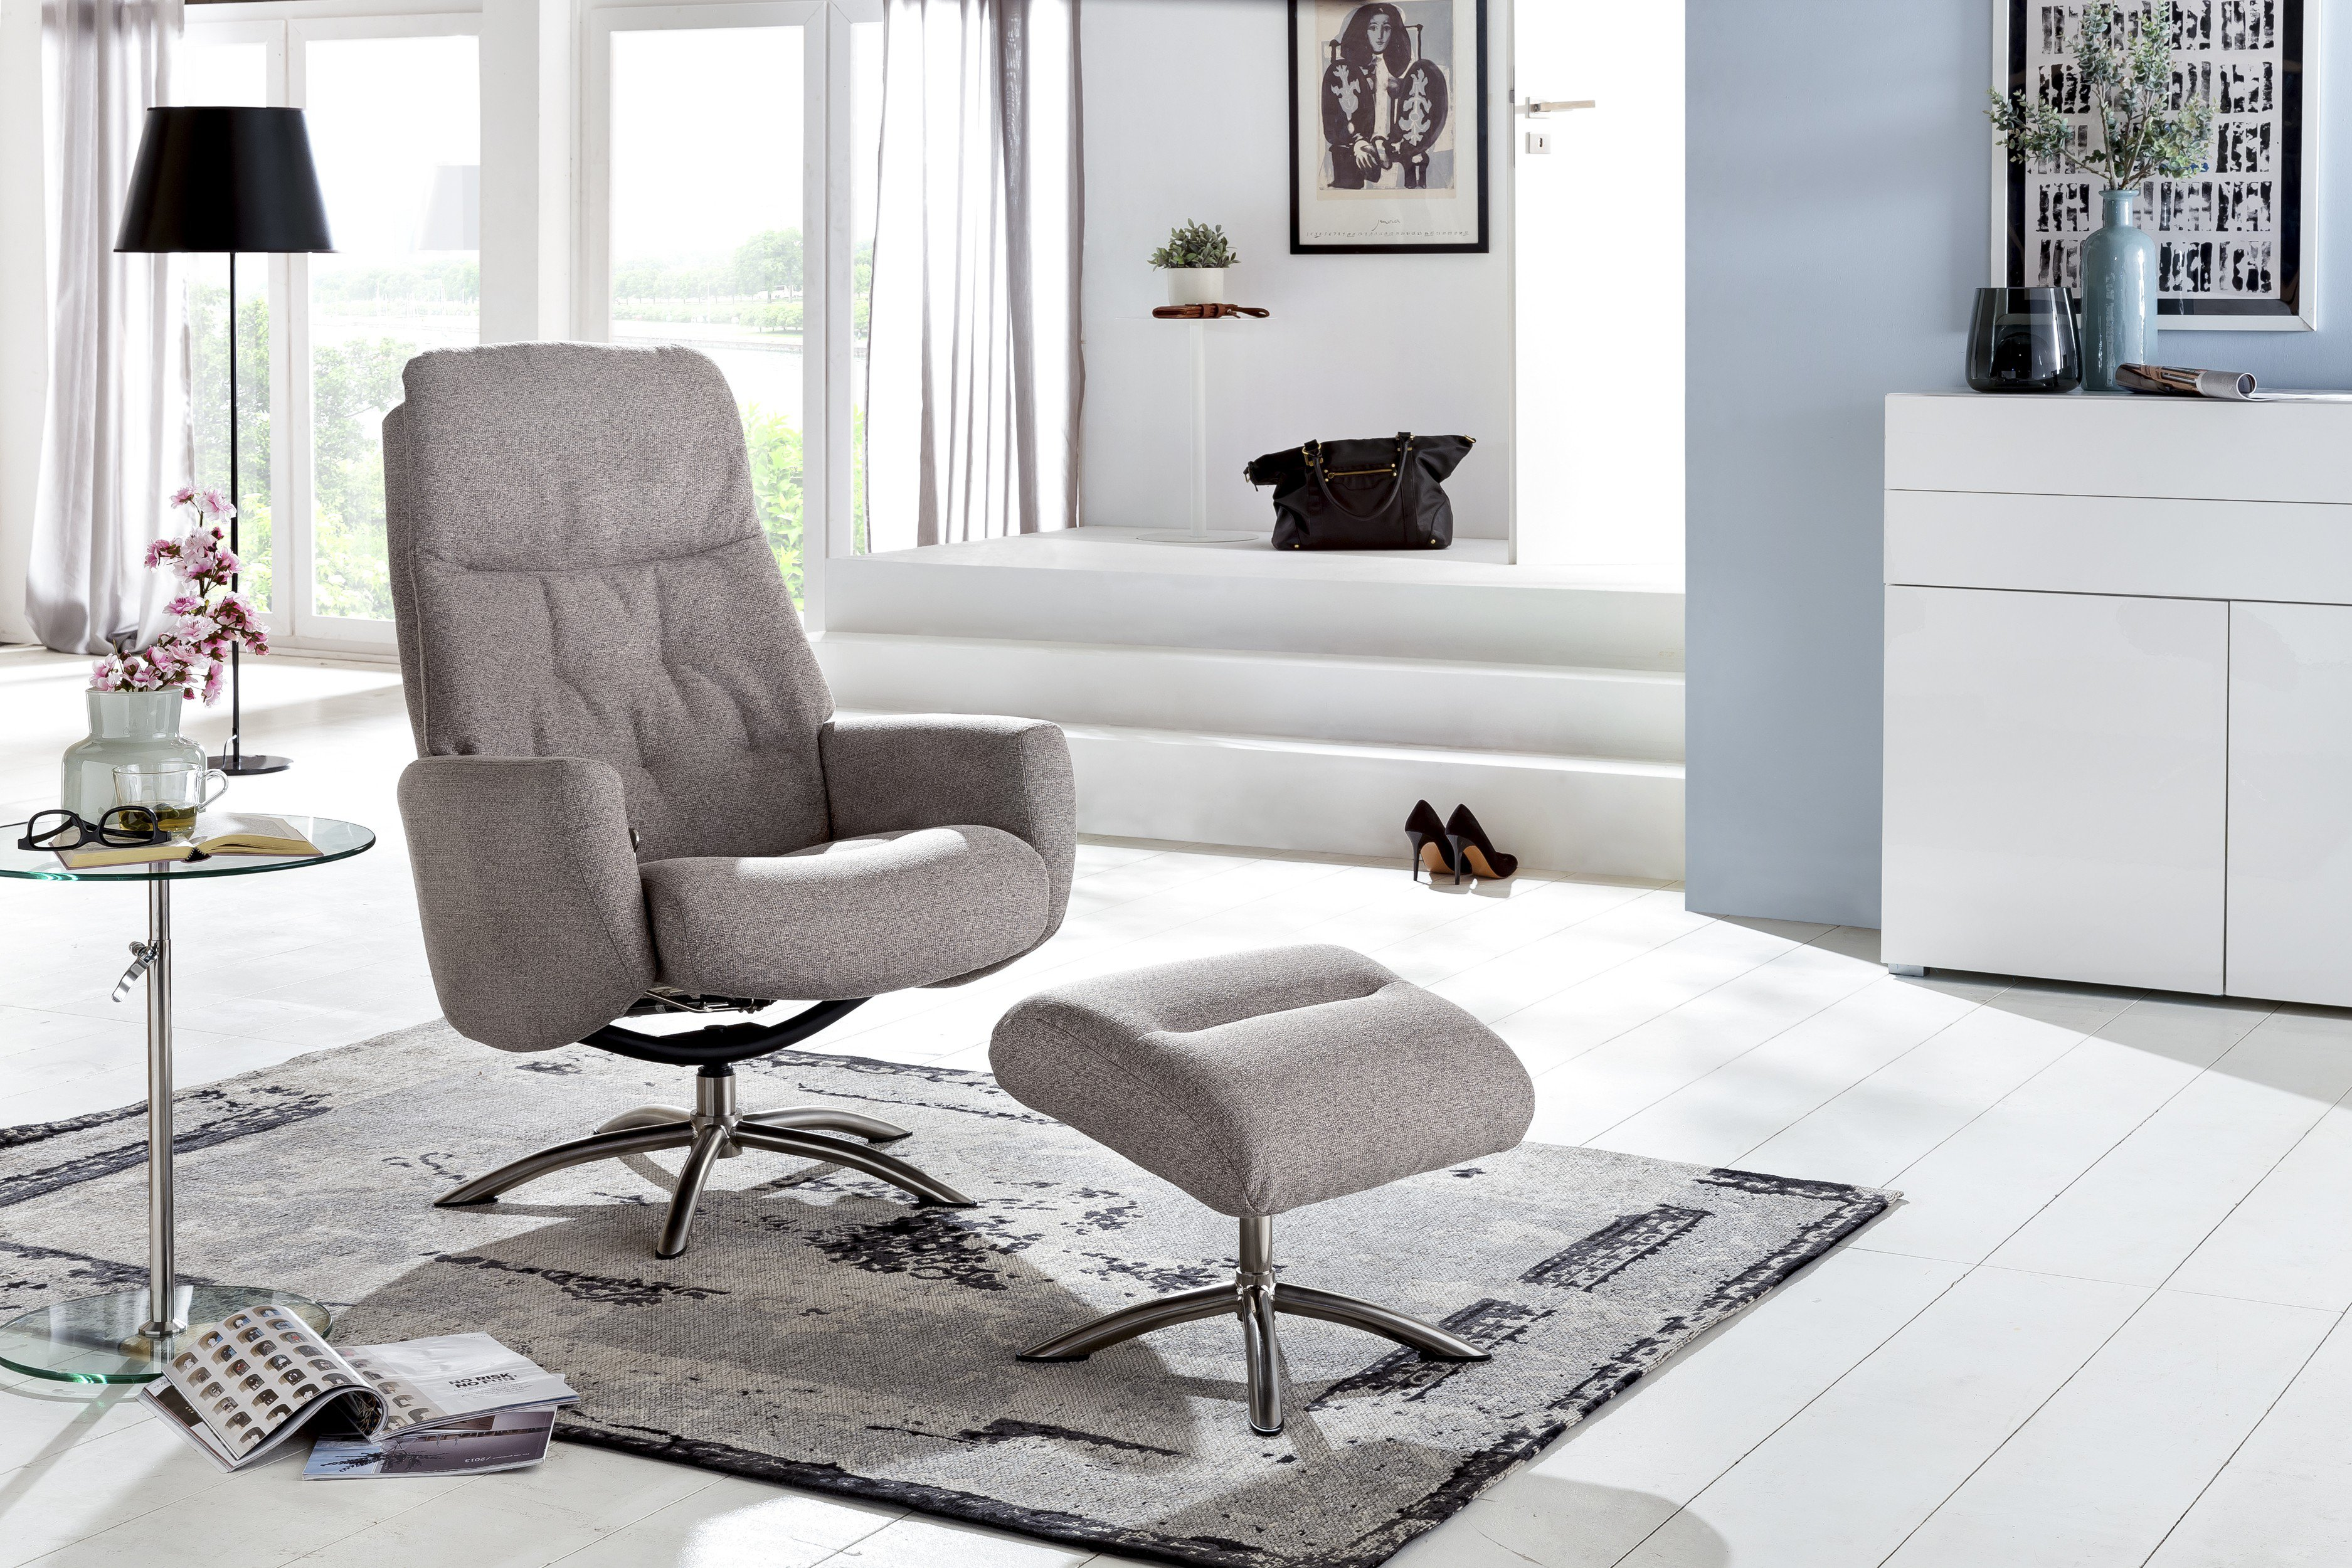 cotta olivia funktionssessel in hellem grau m bel letz ihr online shop. Black Bedroom Furniture Sets. Home Design Ideas